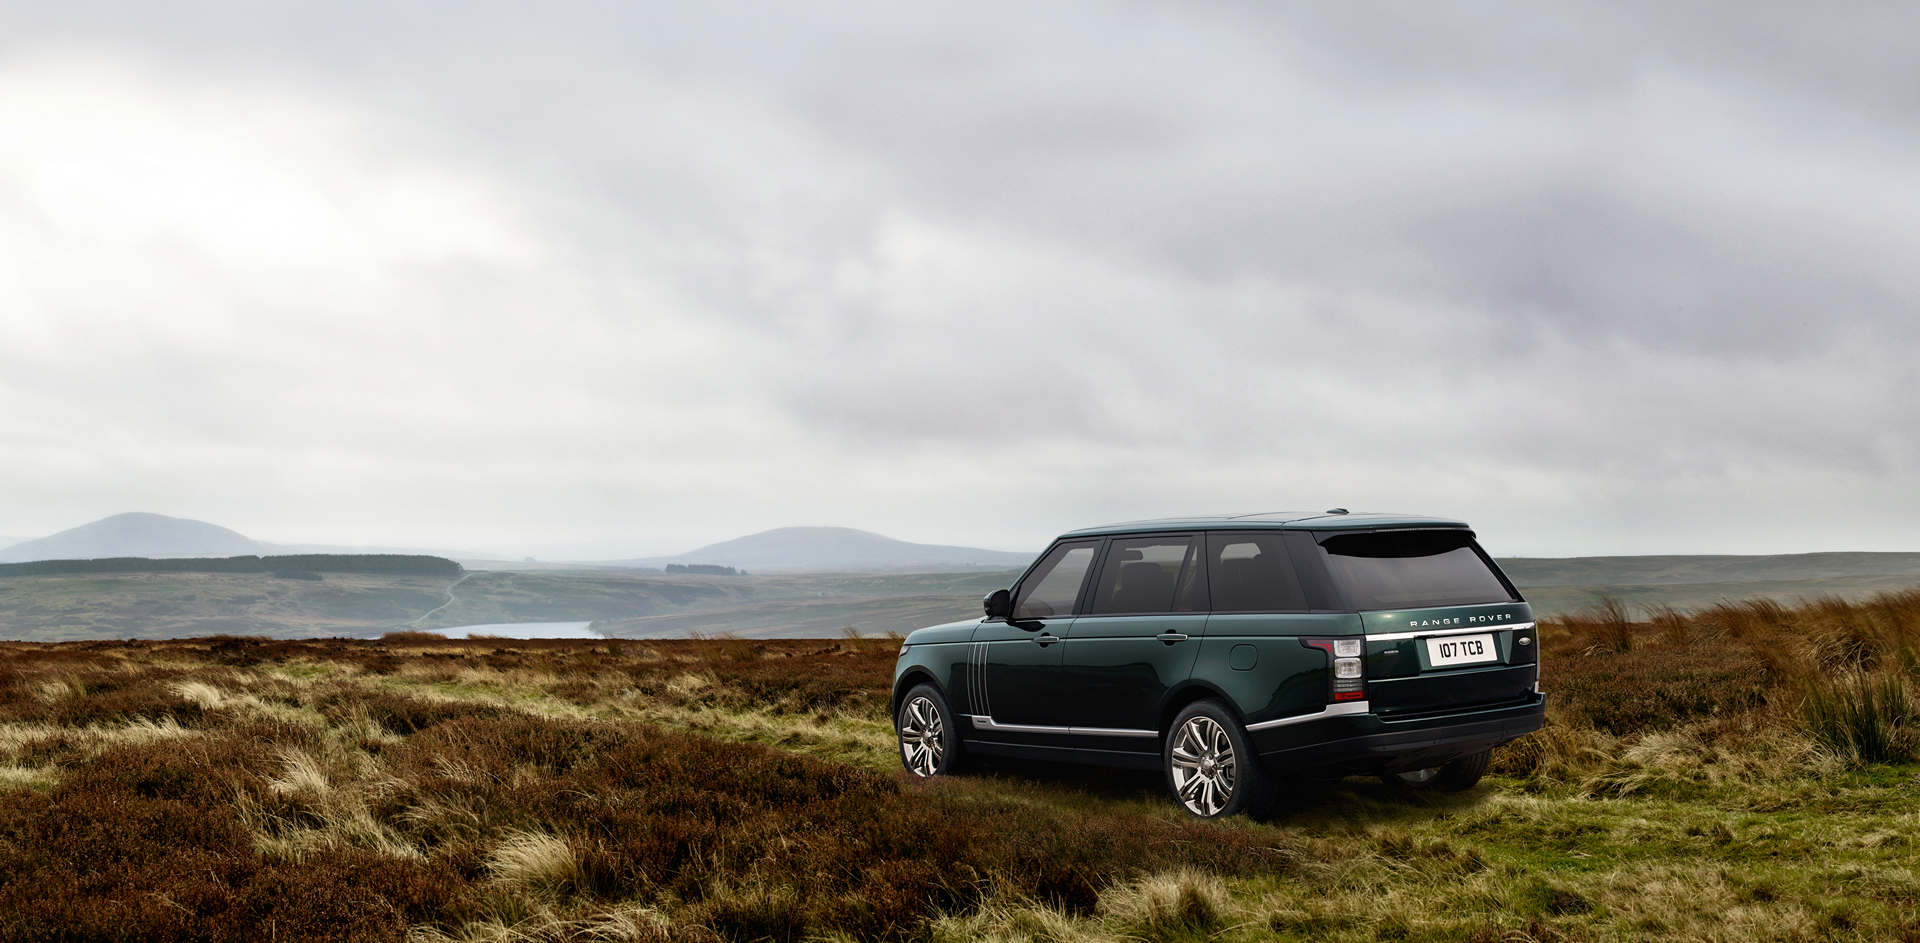 Land Rover Elevates Range Rover Family With Limited